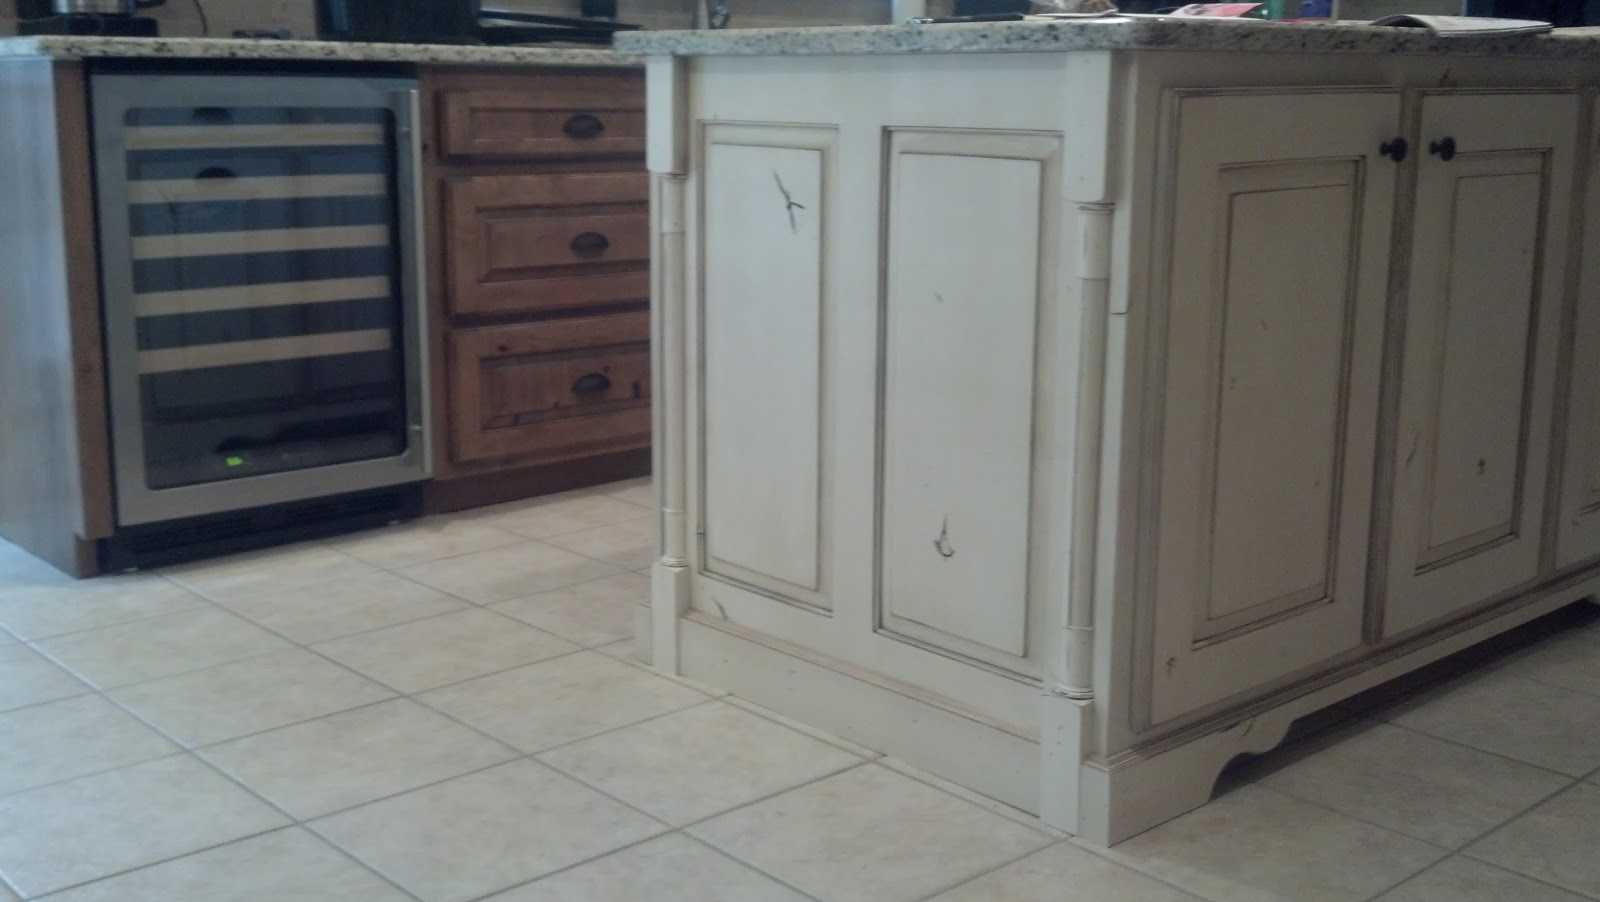 Marvelous How To White Wash Kitchen Cabinets #5: Bellich14.jpg